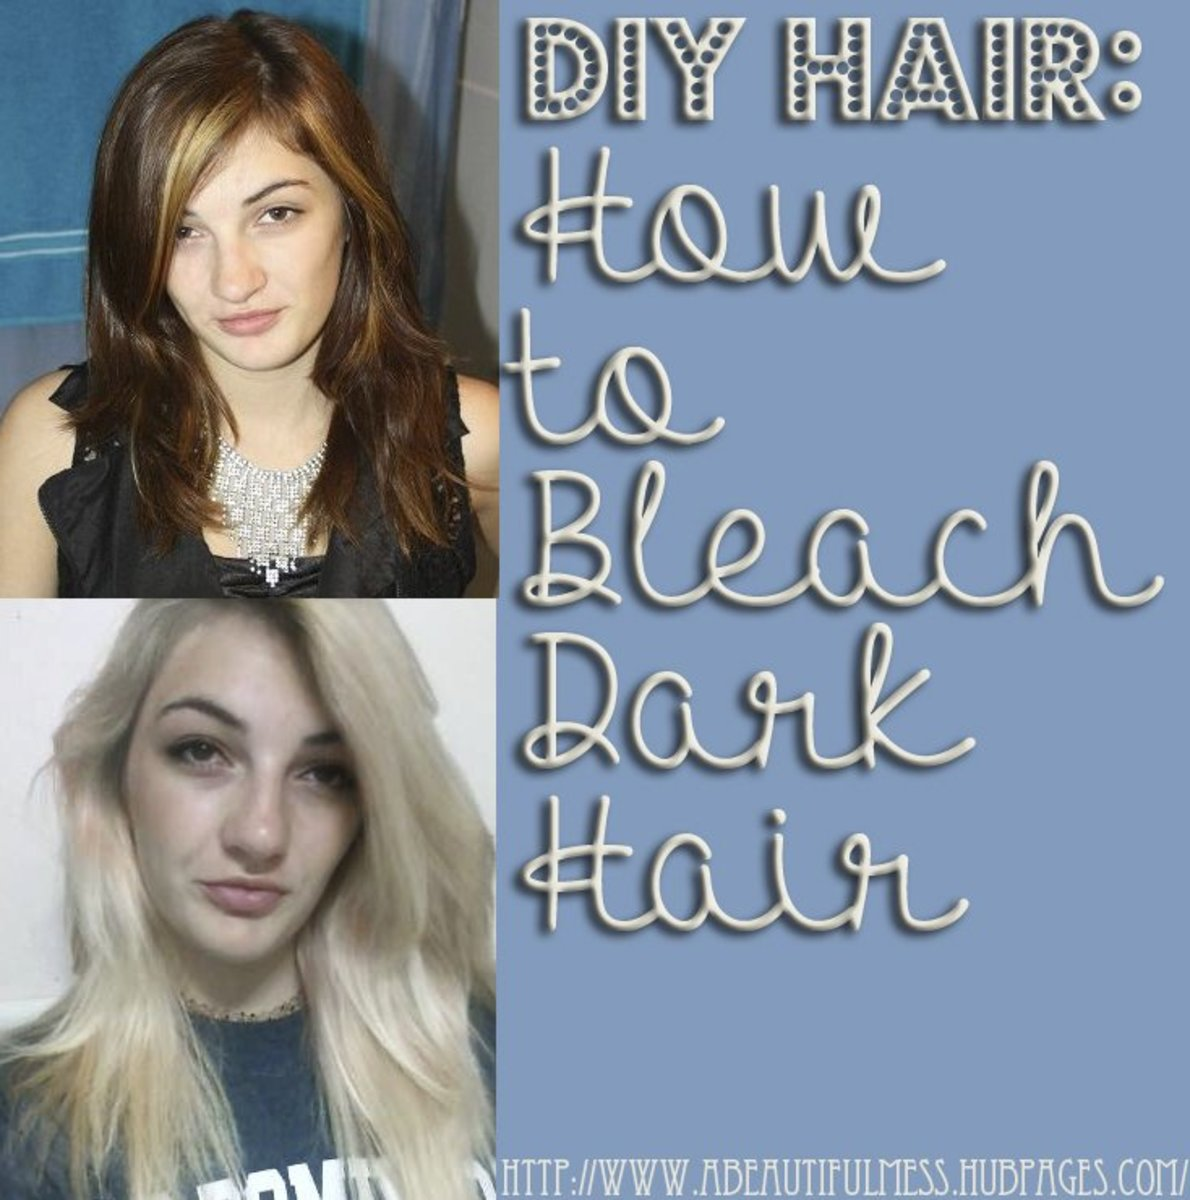 Read on for a step-by-step guide to help you bleach your hair correctly.